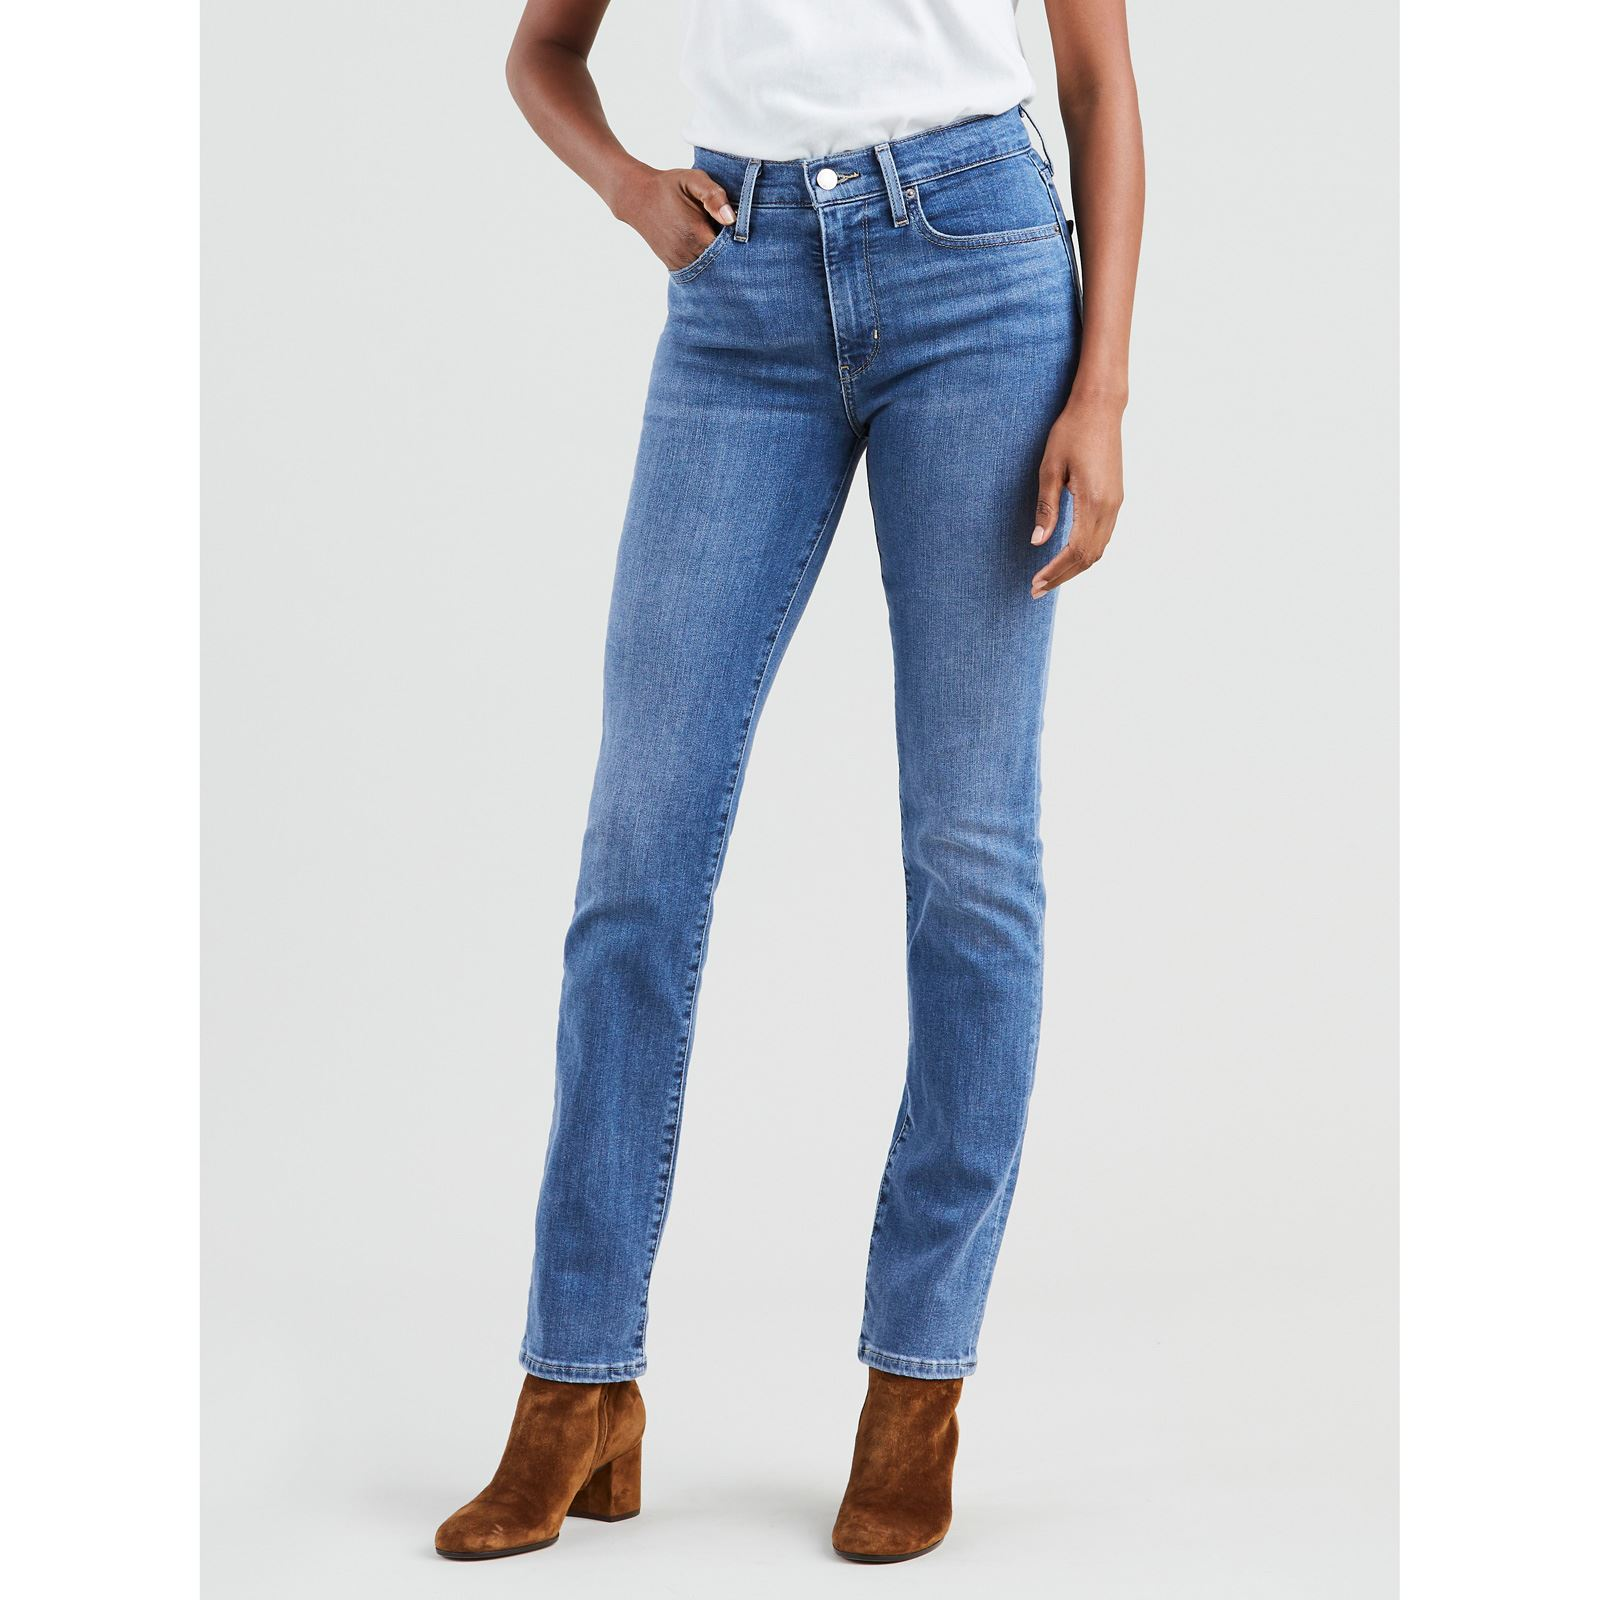 Straight 724 High Levi's Rise ThoughtBrandalley Second dsQrht